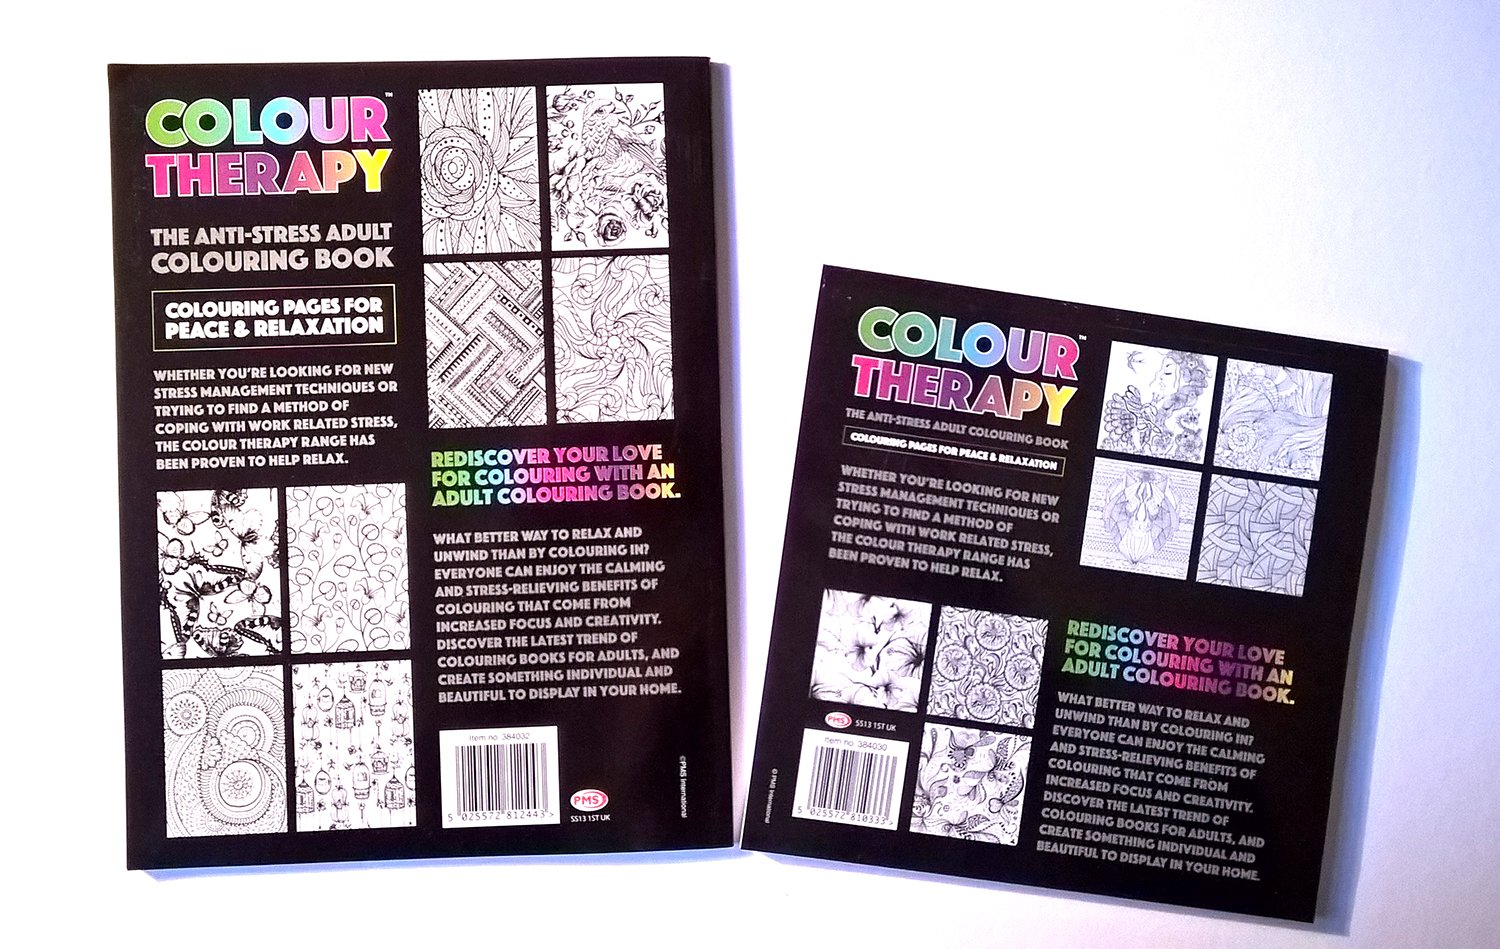 Grown up colouring books benefits - Adult Colouring Books Set Anti Stress Bundle Including 2 Therapy Books A4 Size Smaller Travel Size High Quality Art Pencils Clear Pencil Case Metal